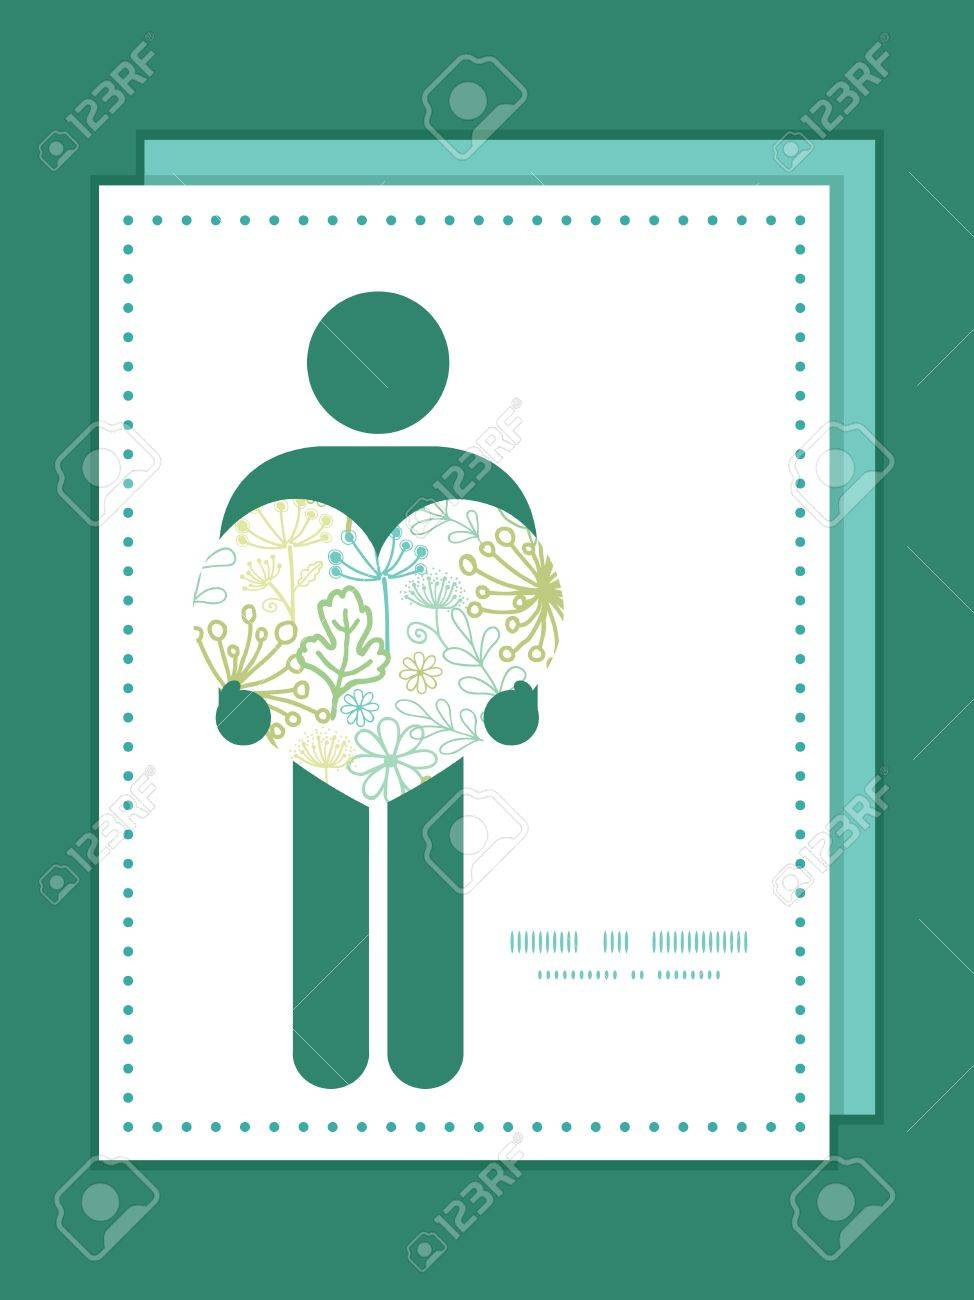 Vector mysterious green garden man in love silhouette frame pattern banco de imagens vector mysterious green garden man in love silhouette frame pattern invitation greeting card template stopboris Image collections